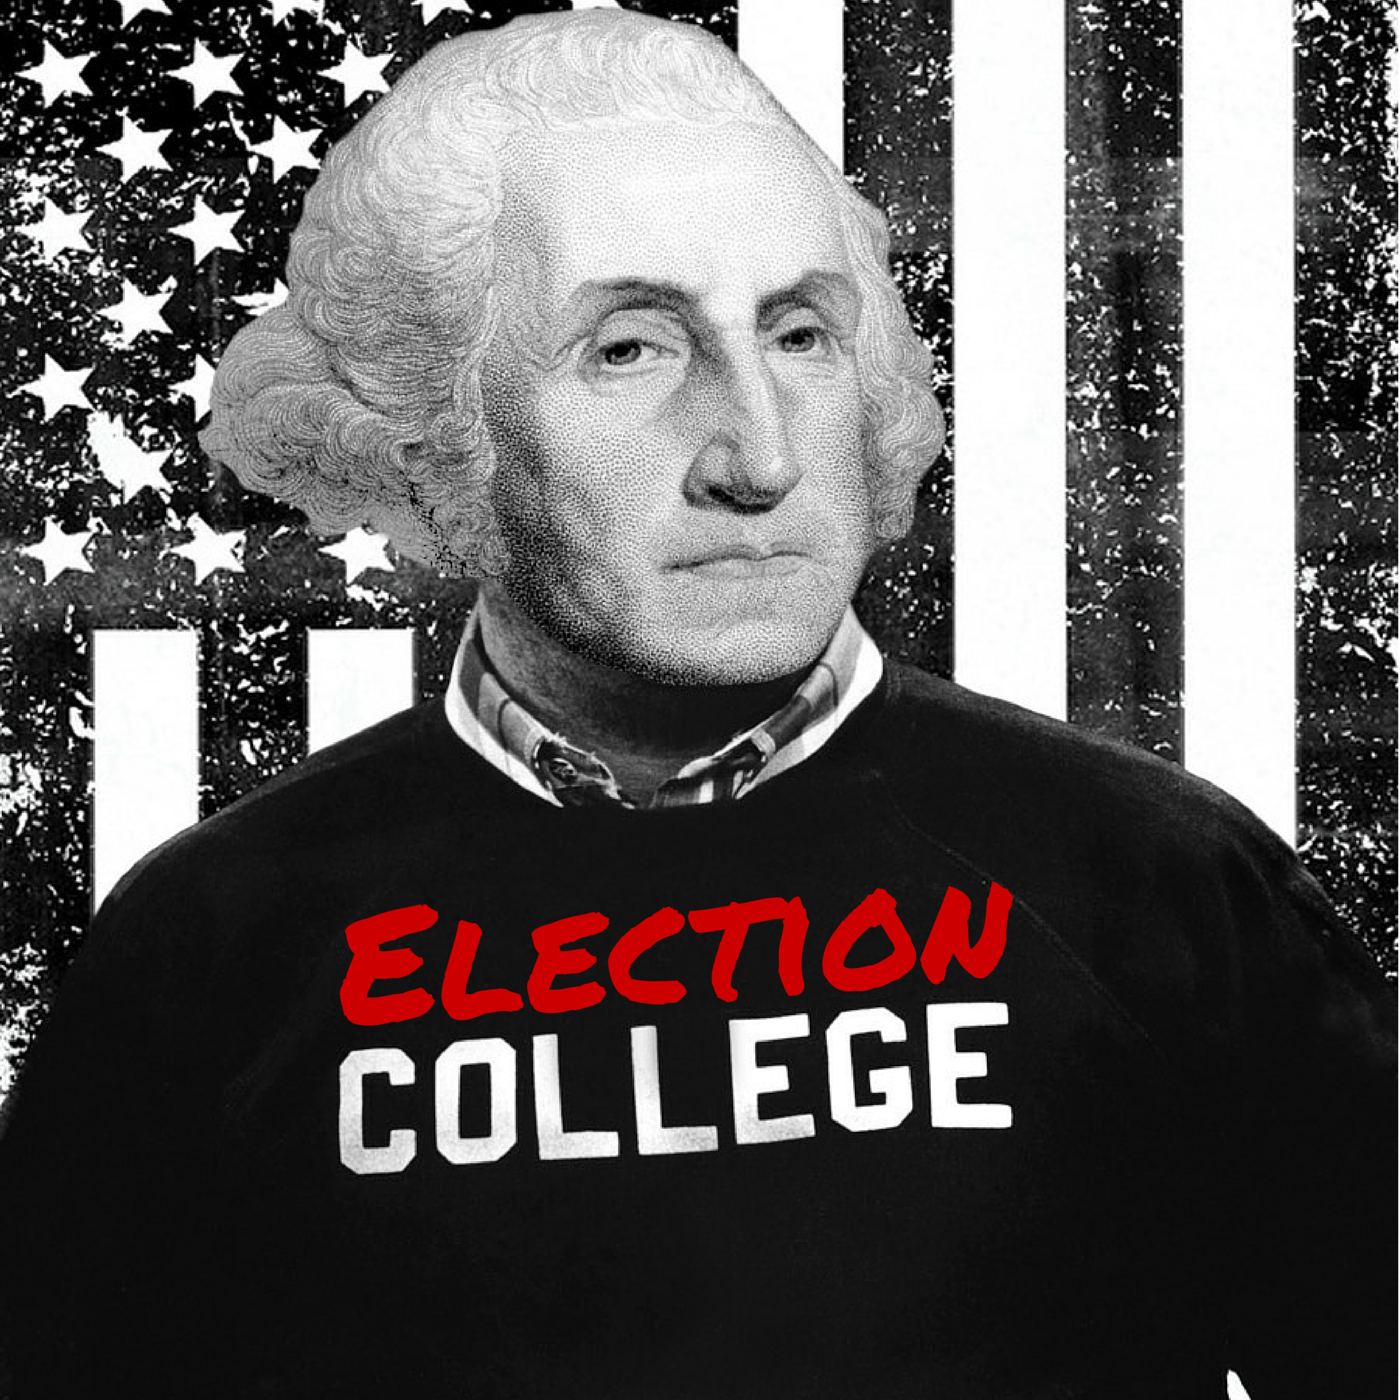 Ulysses S. Grant - Part 2 | Episode #245 | Election College: United States Presidential Election History